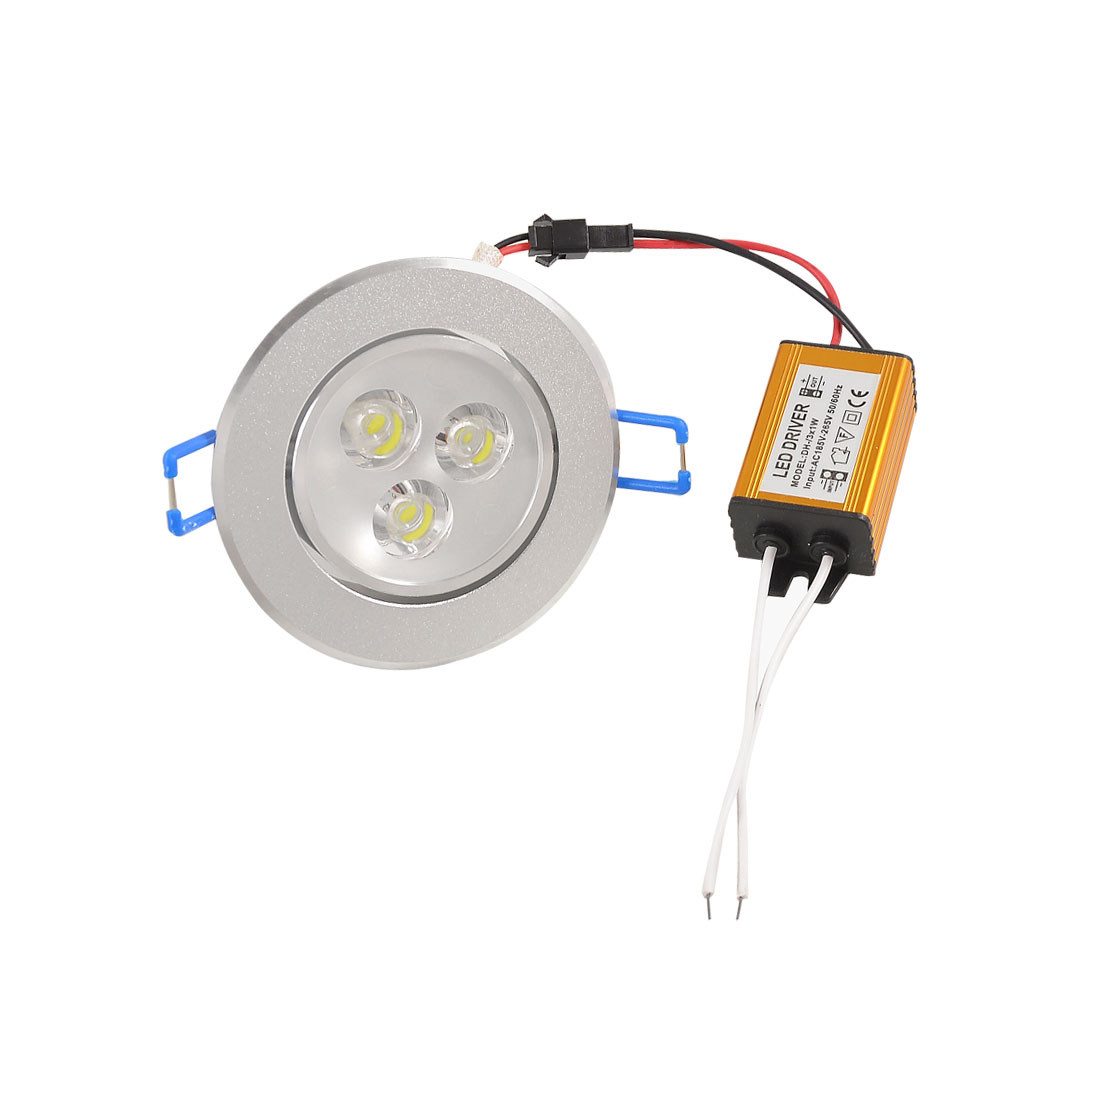 AC 185V-265V 3W Round 3 White LEDs Recessed Ceiling Lamp Downlight